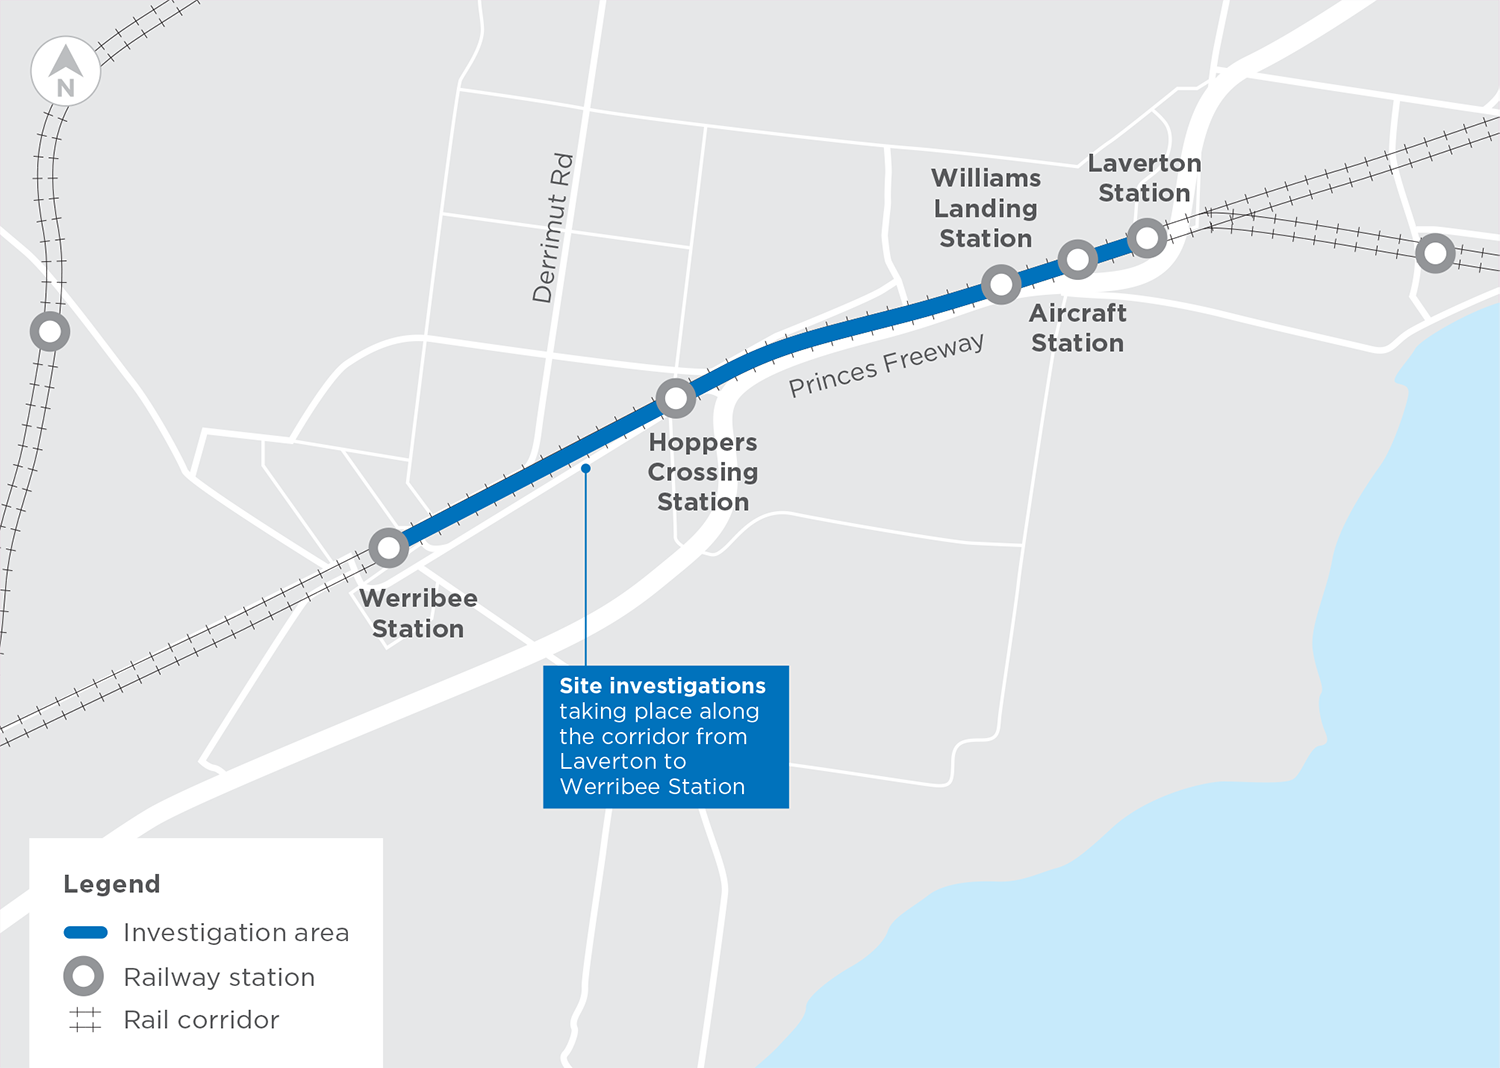 Map showing site investigaions are taking place along the Werrbee line between Werribee Station and Laverton Station